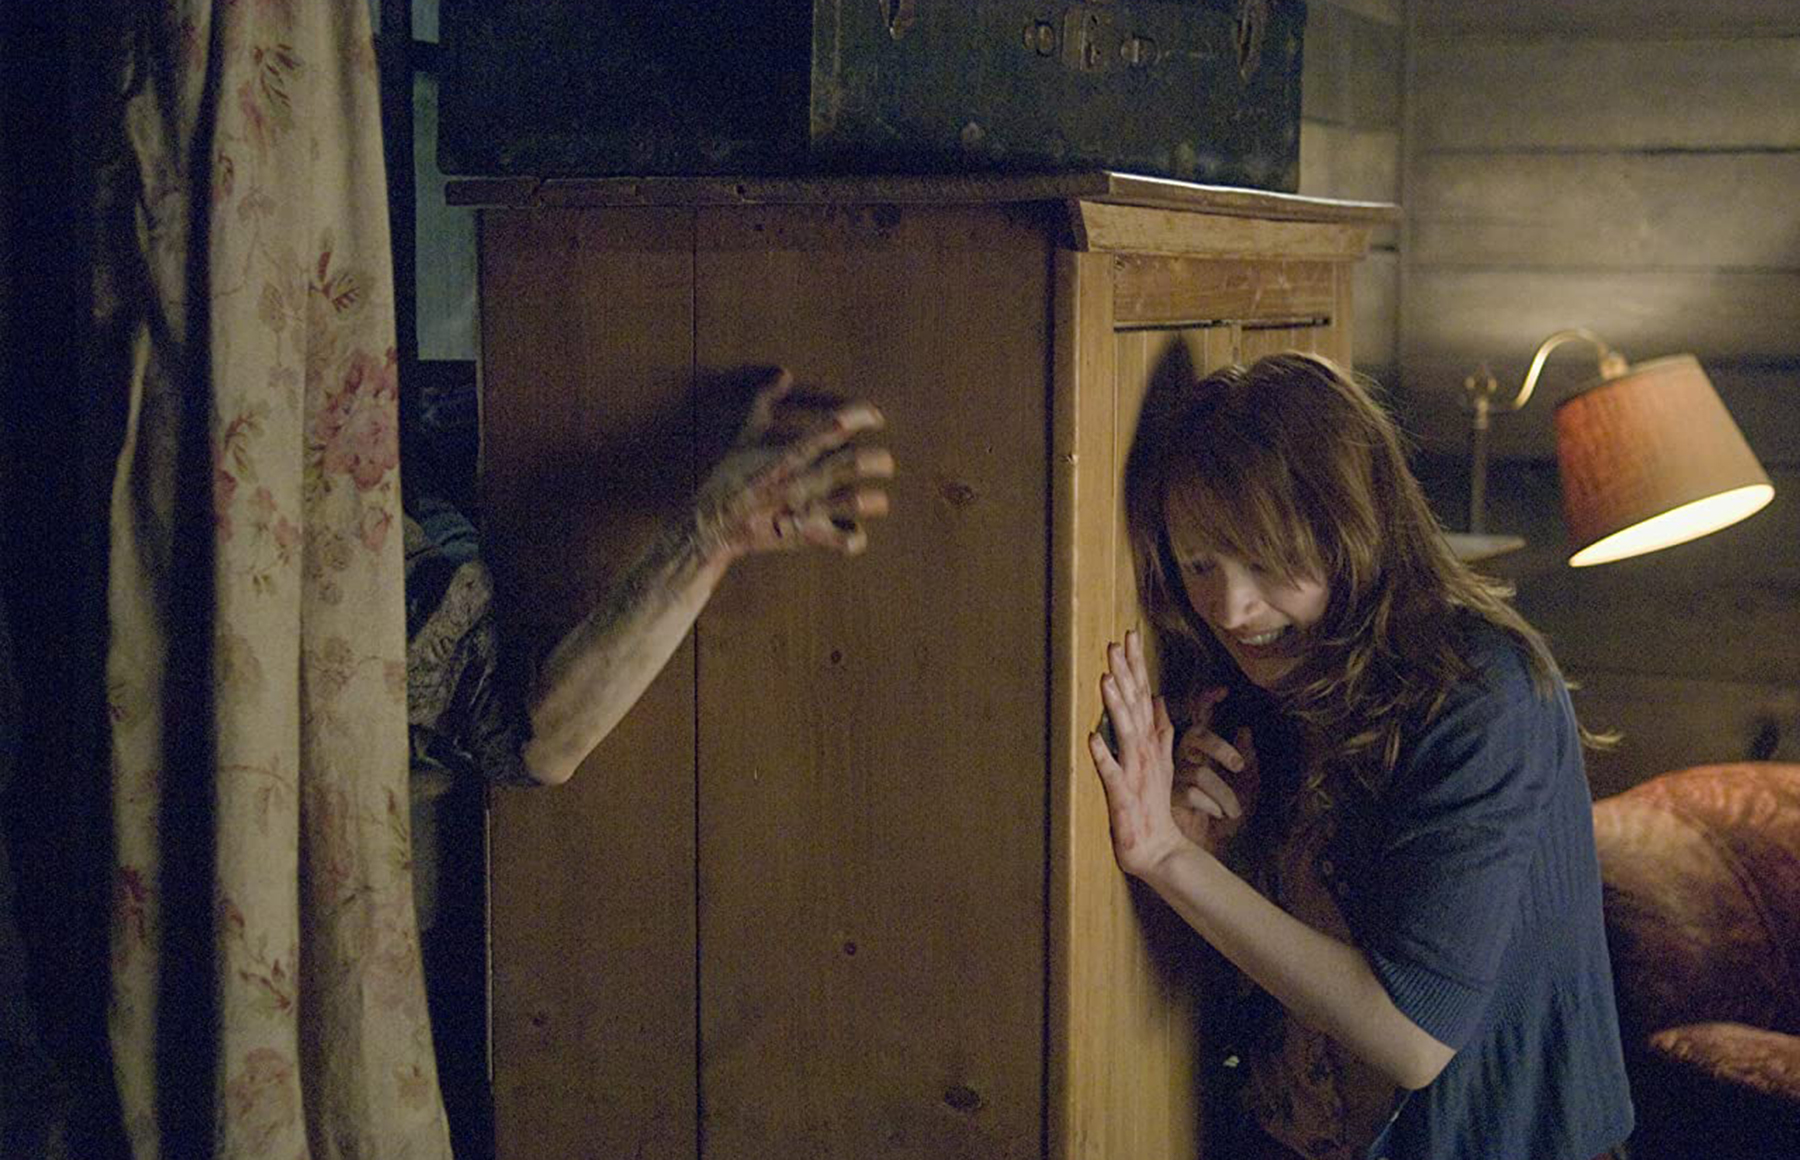 Horror movies for people who don't like horror